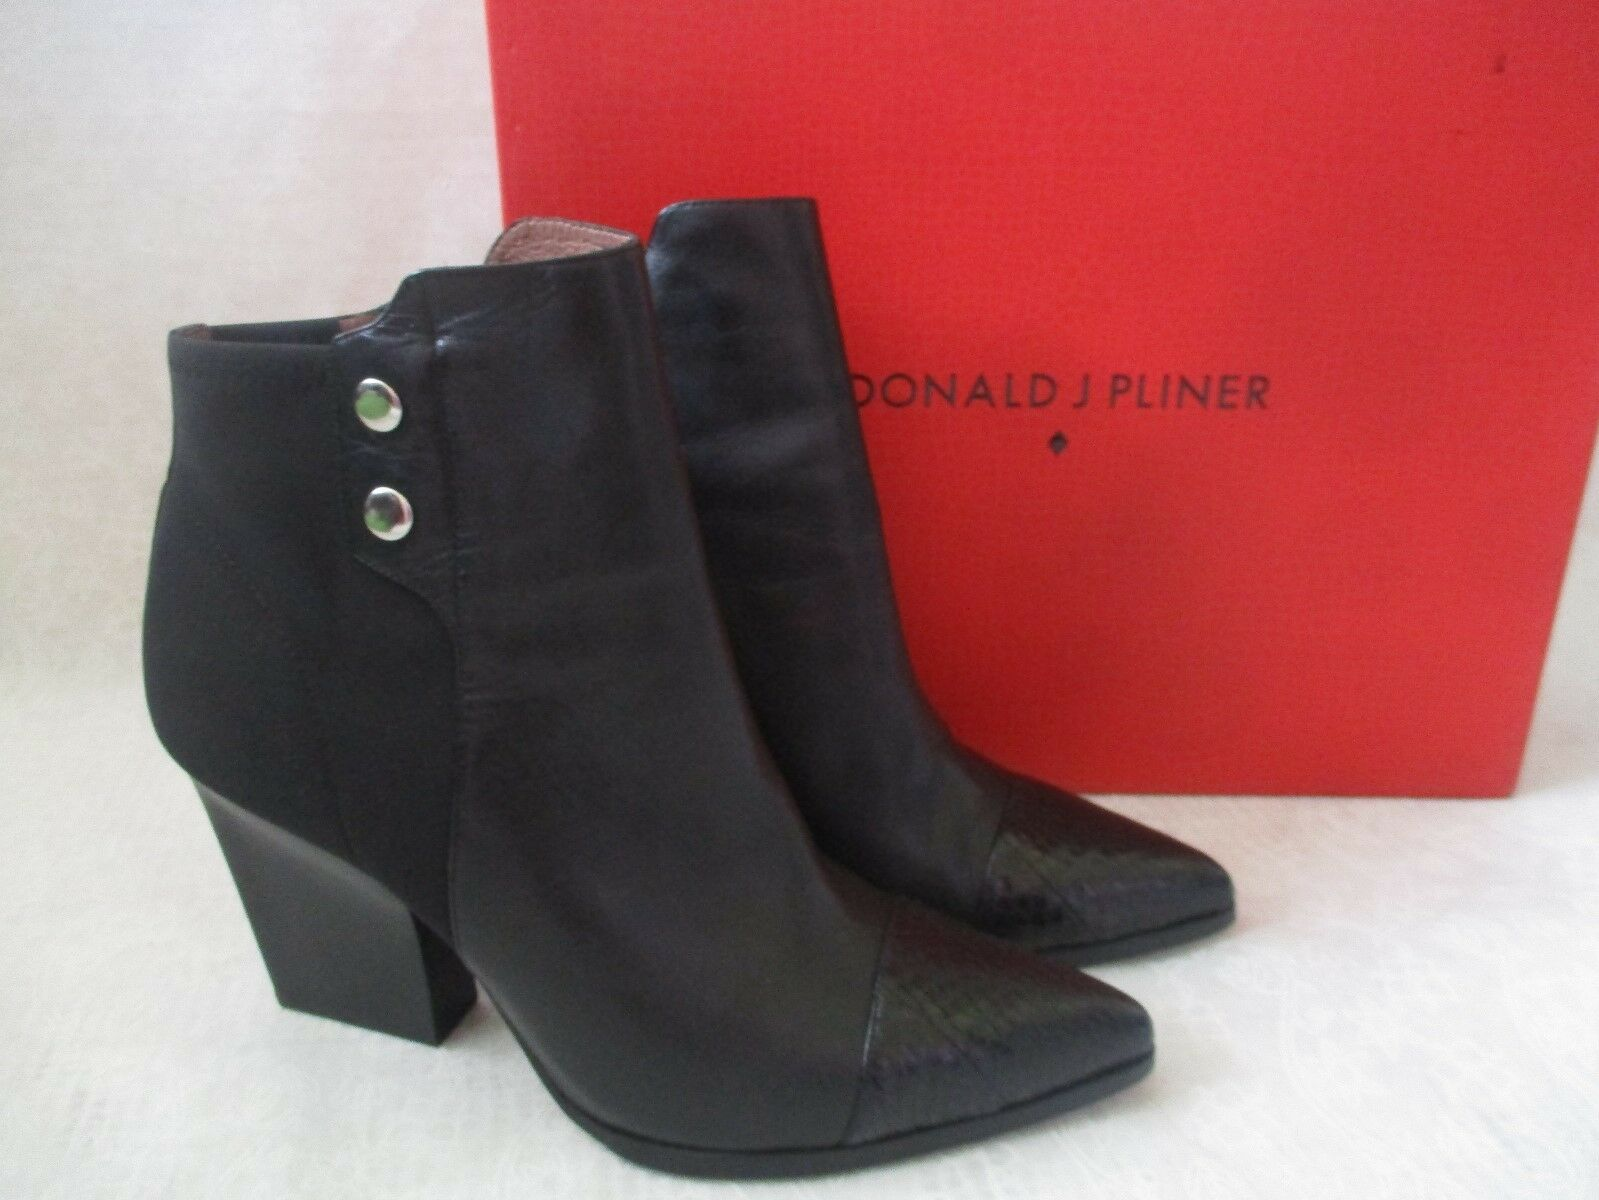 DONALD J PLINER BLACK VICSON LEATHER FABRIC ANKLE BOOTS SIZE 7 M -